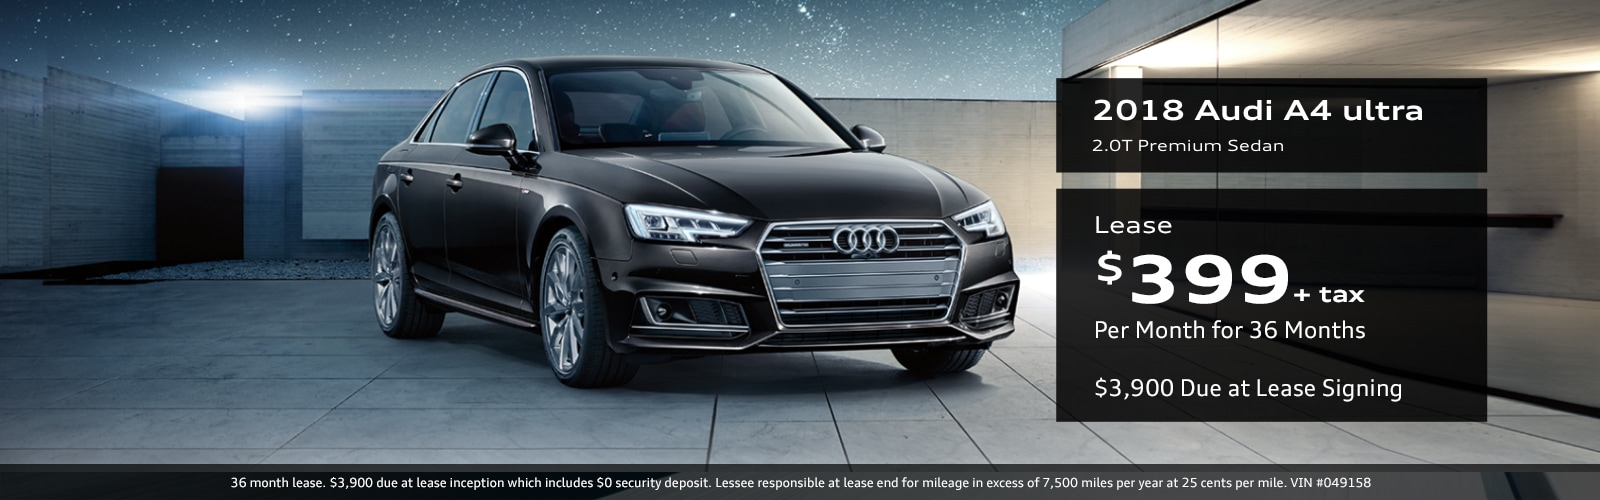 New Audi Used Car Dealer In Livermore CA Near Dublin - Bay area audi dealerships